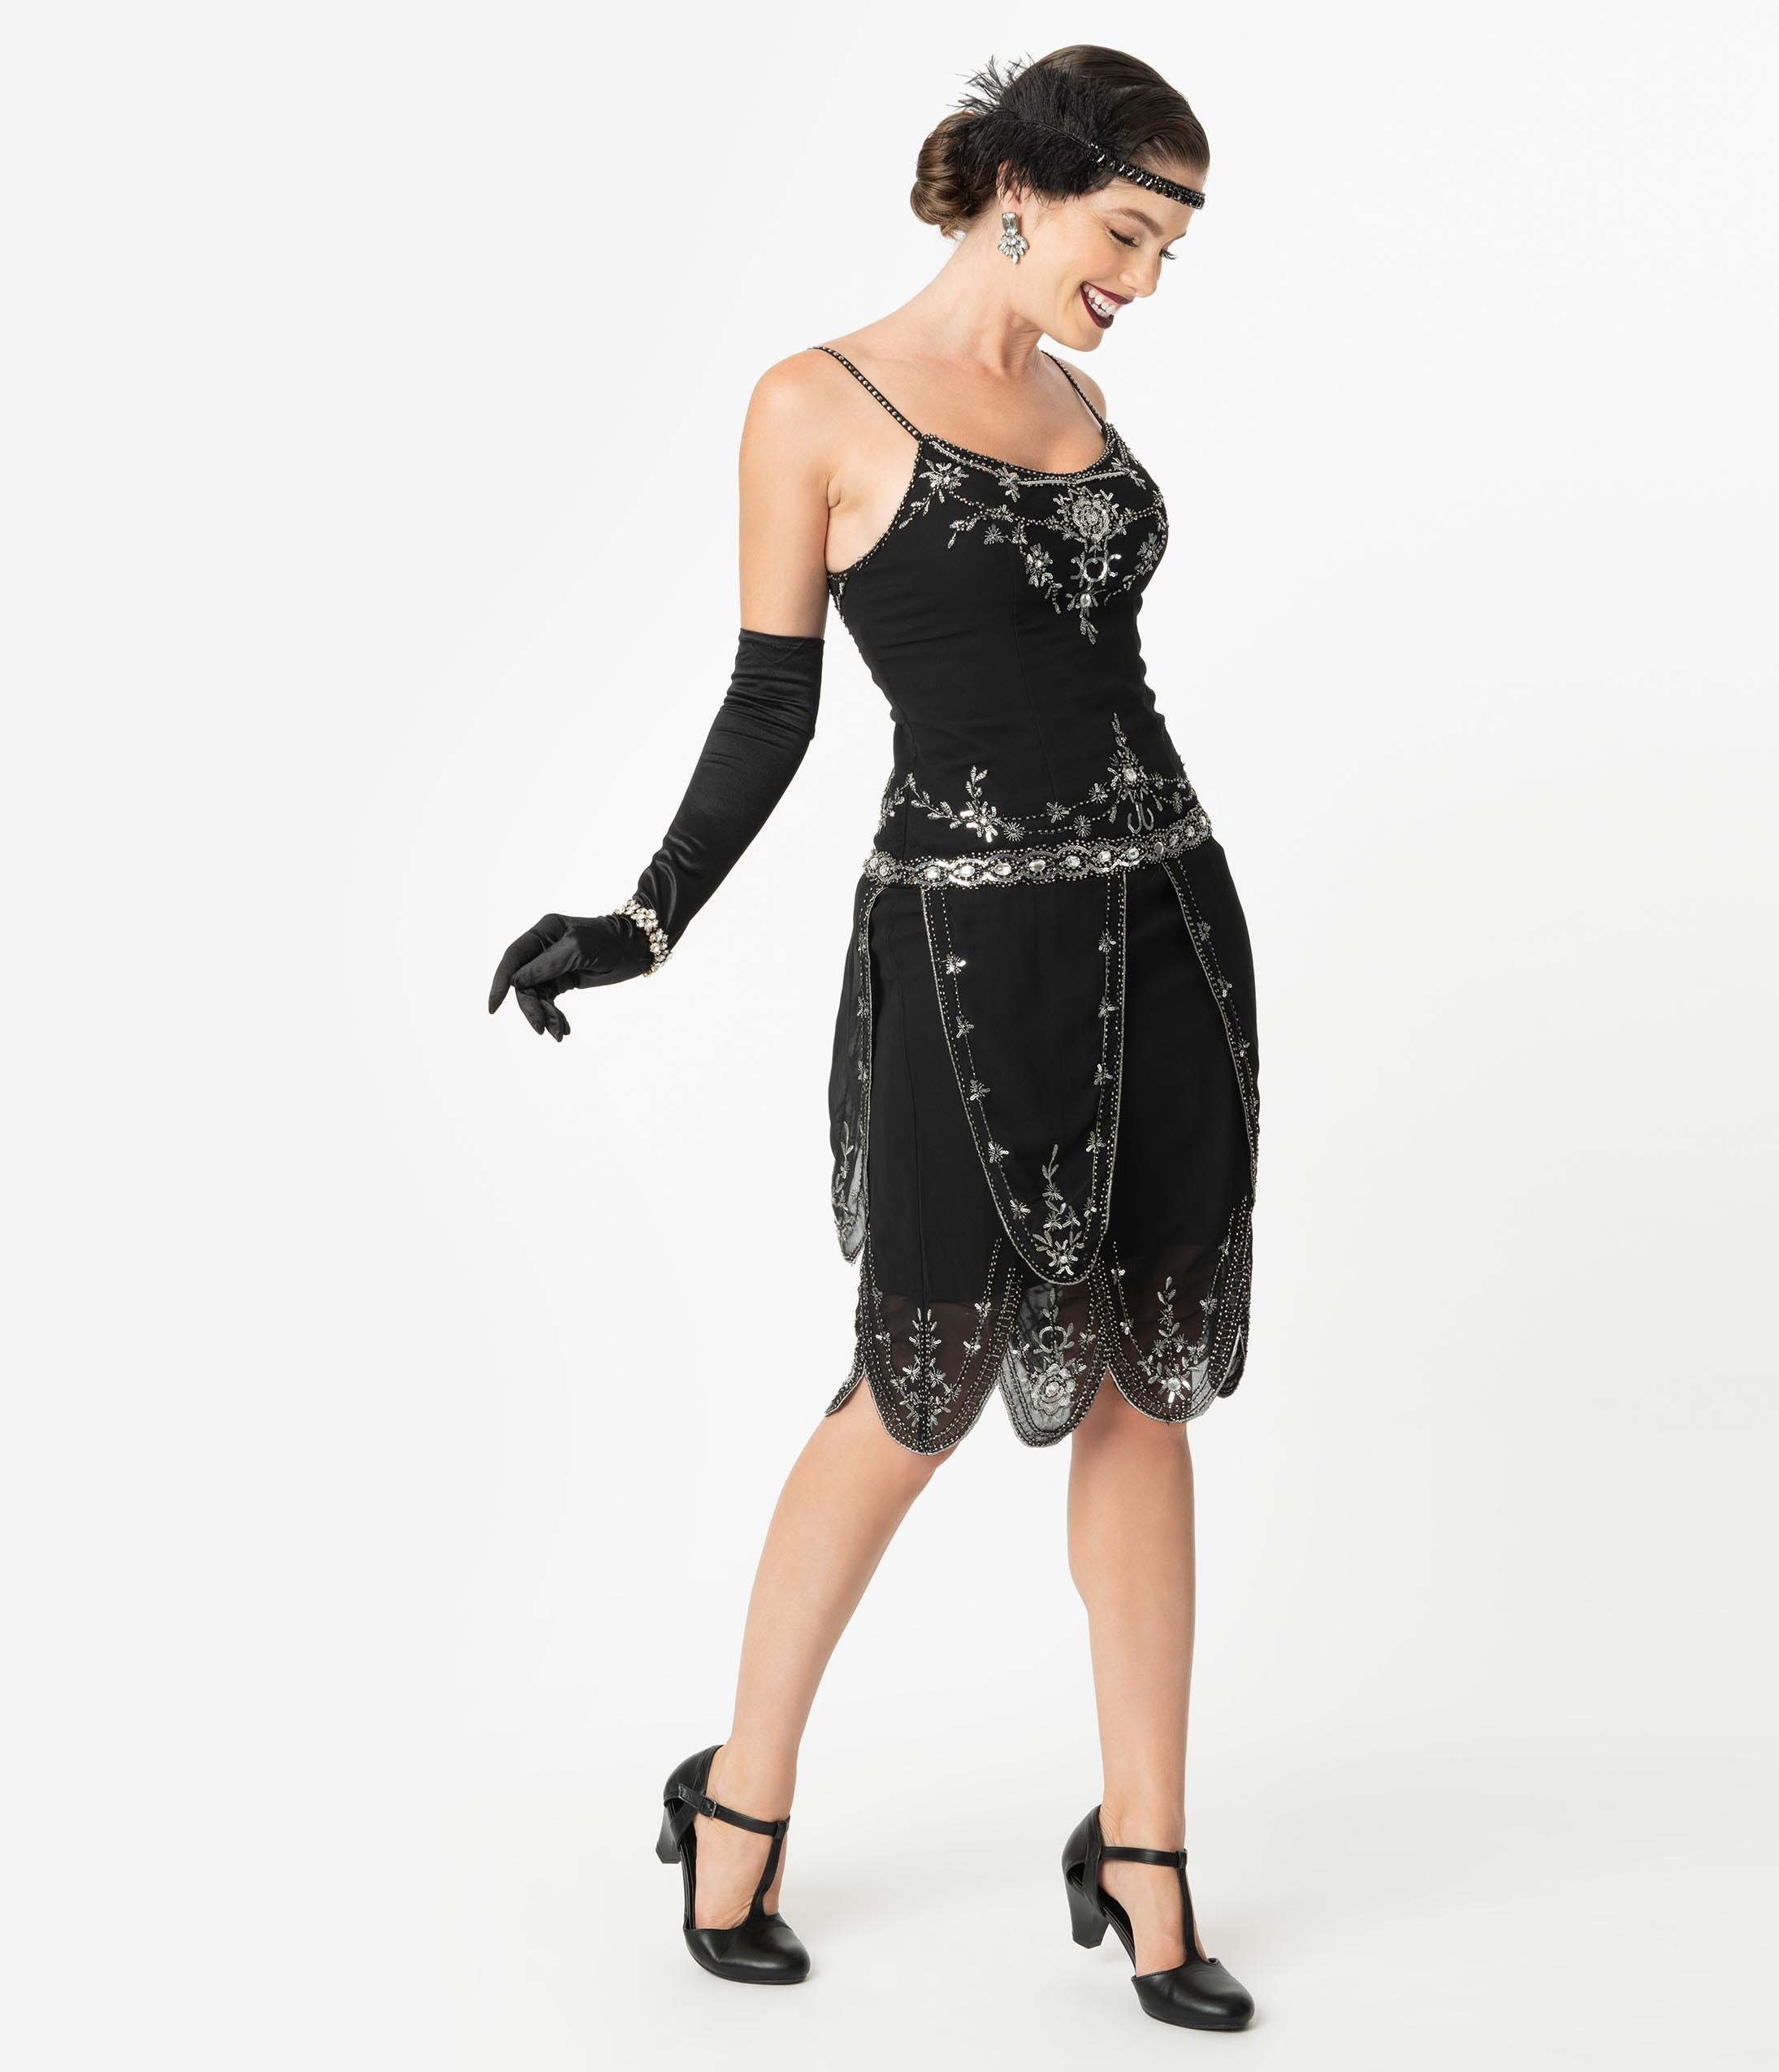 Flapper Dresses & Quality Flapper Costumes Unique Vintage Deco Style Black  Silver Embellished Odette Cocktail Dress $98.00 AT vintagedancer.com